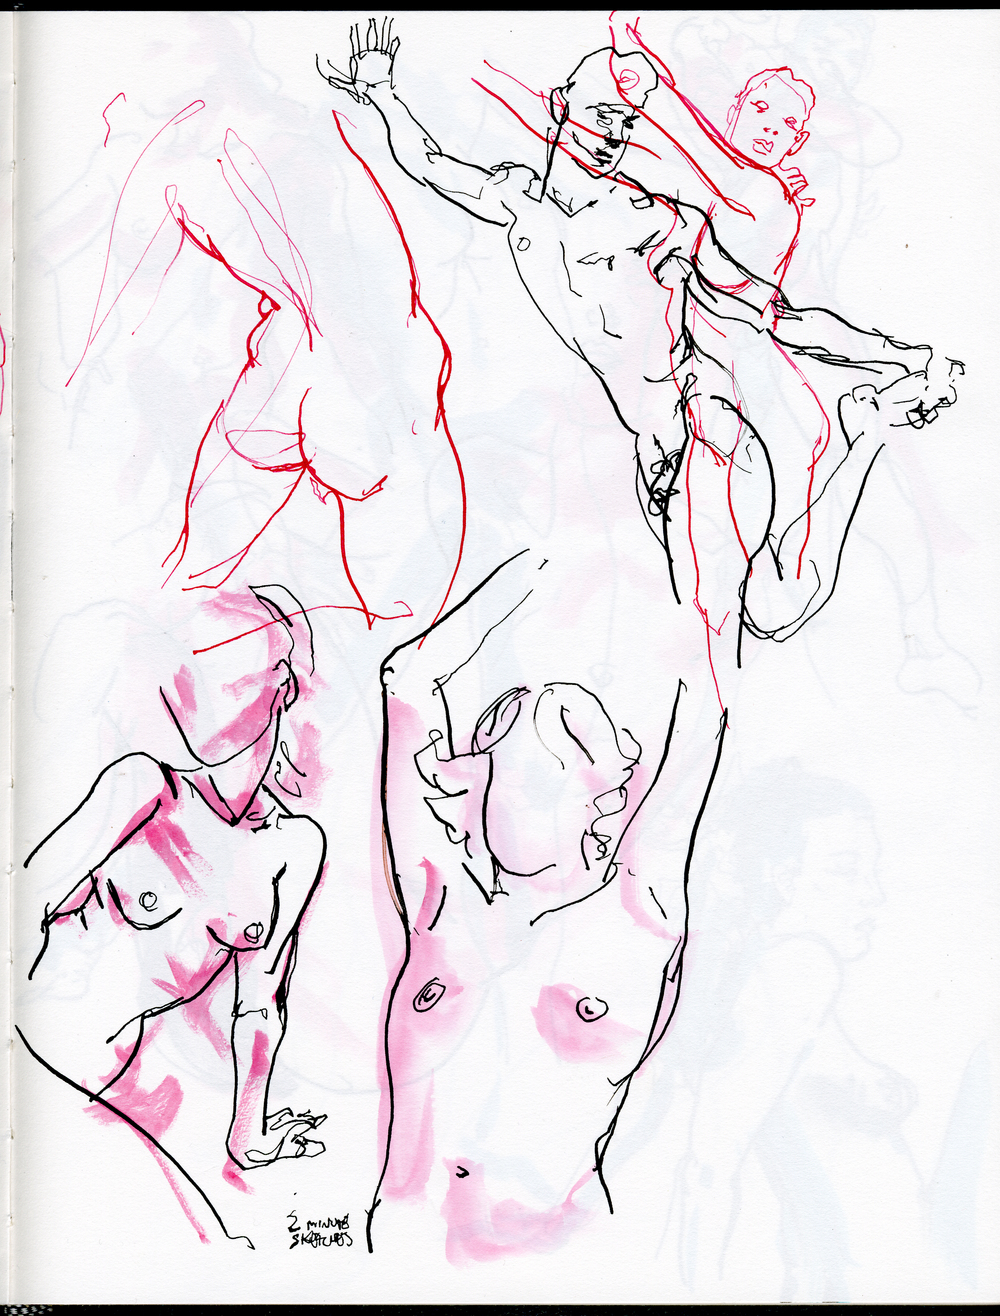 Sketchbook_Apr08_074.jpg